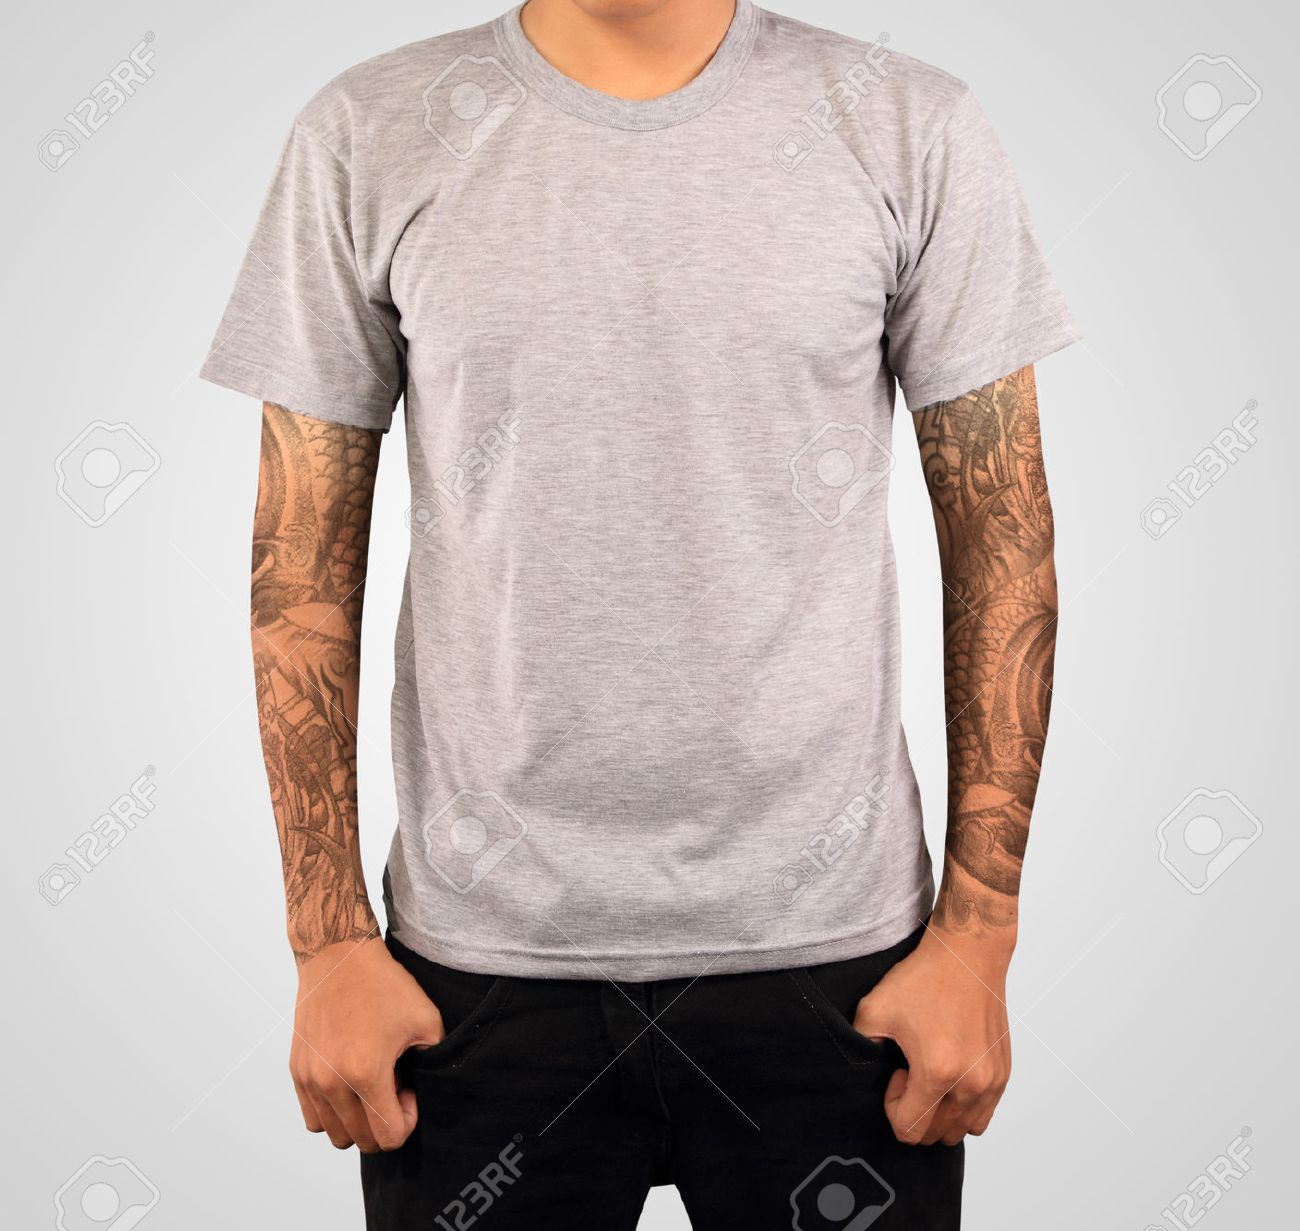 Black t shirt model template - Black T Shirt Model Grey T Shirt Template